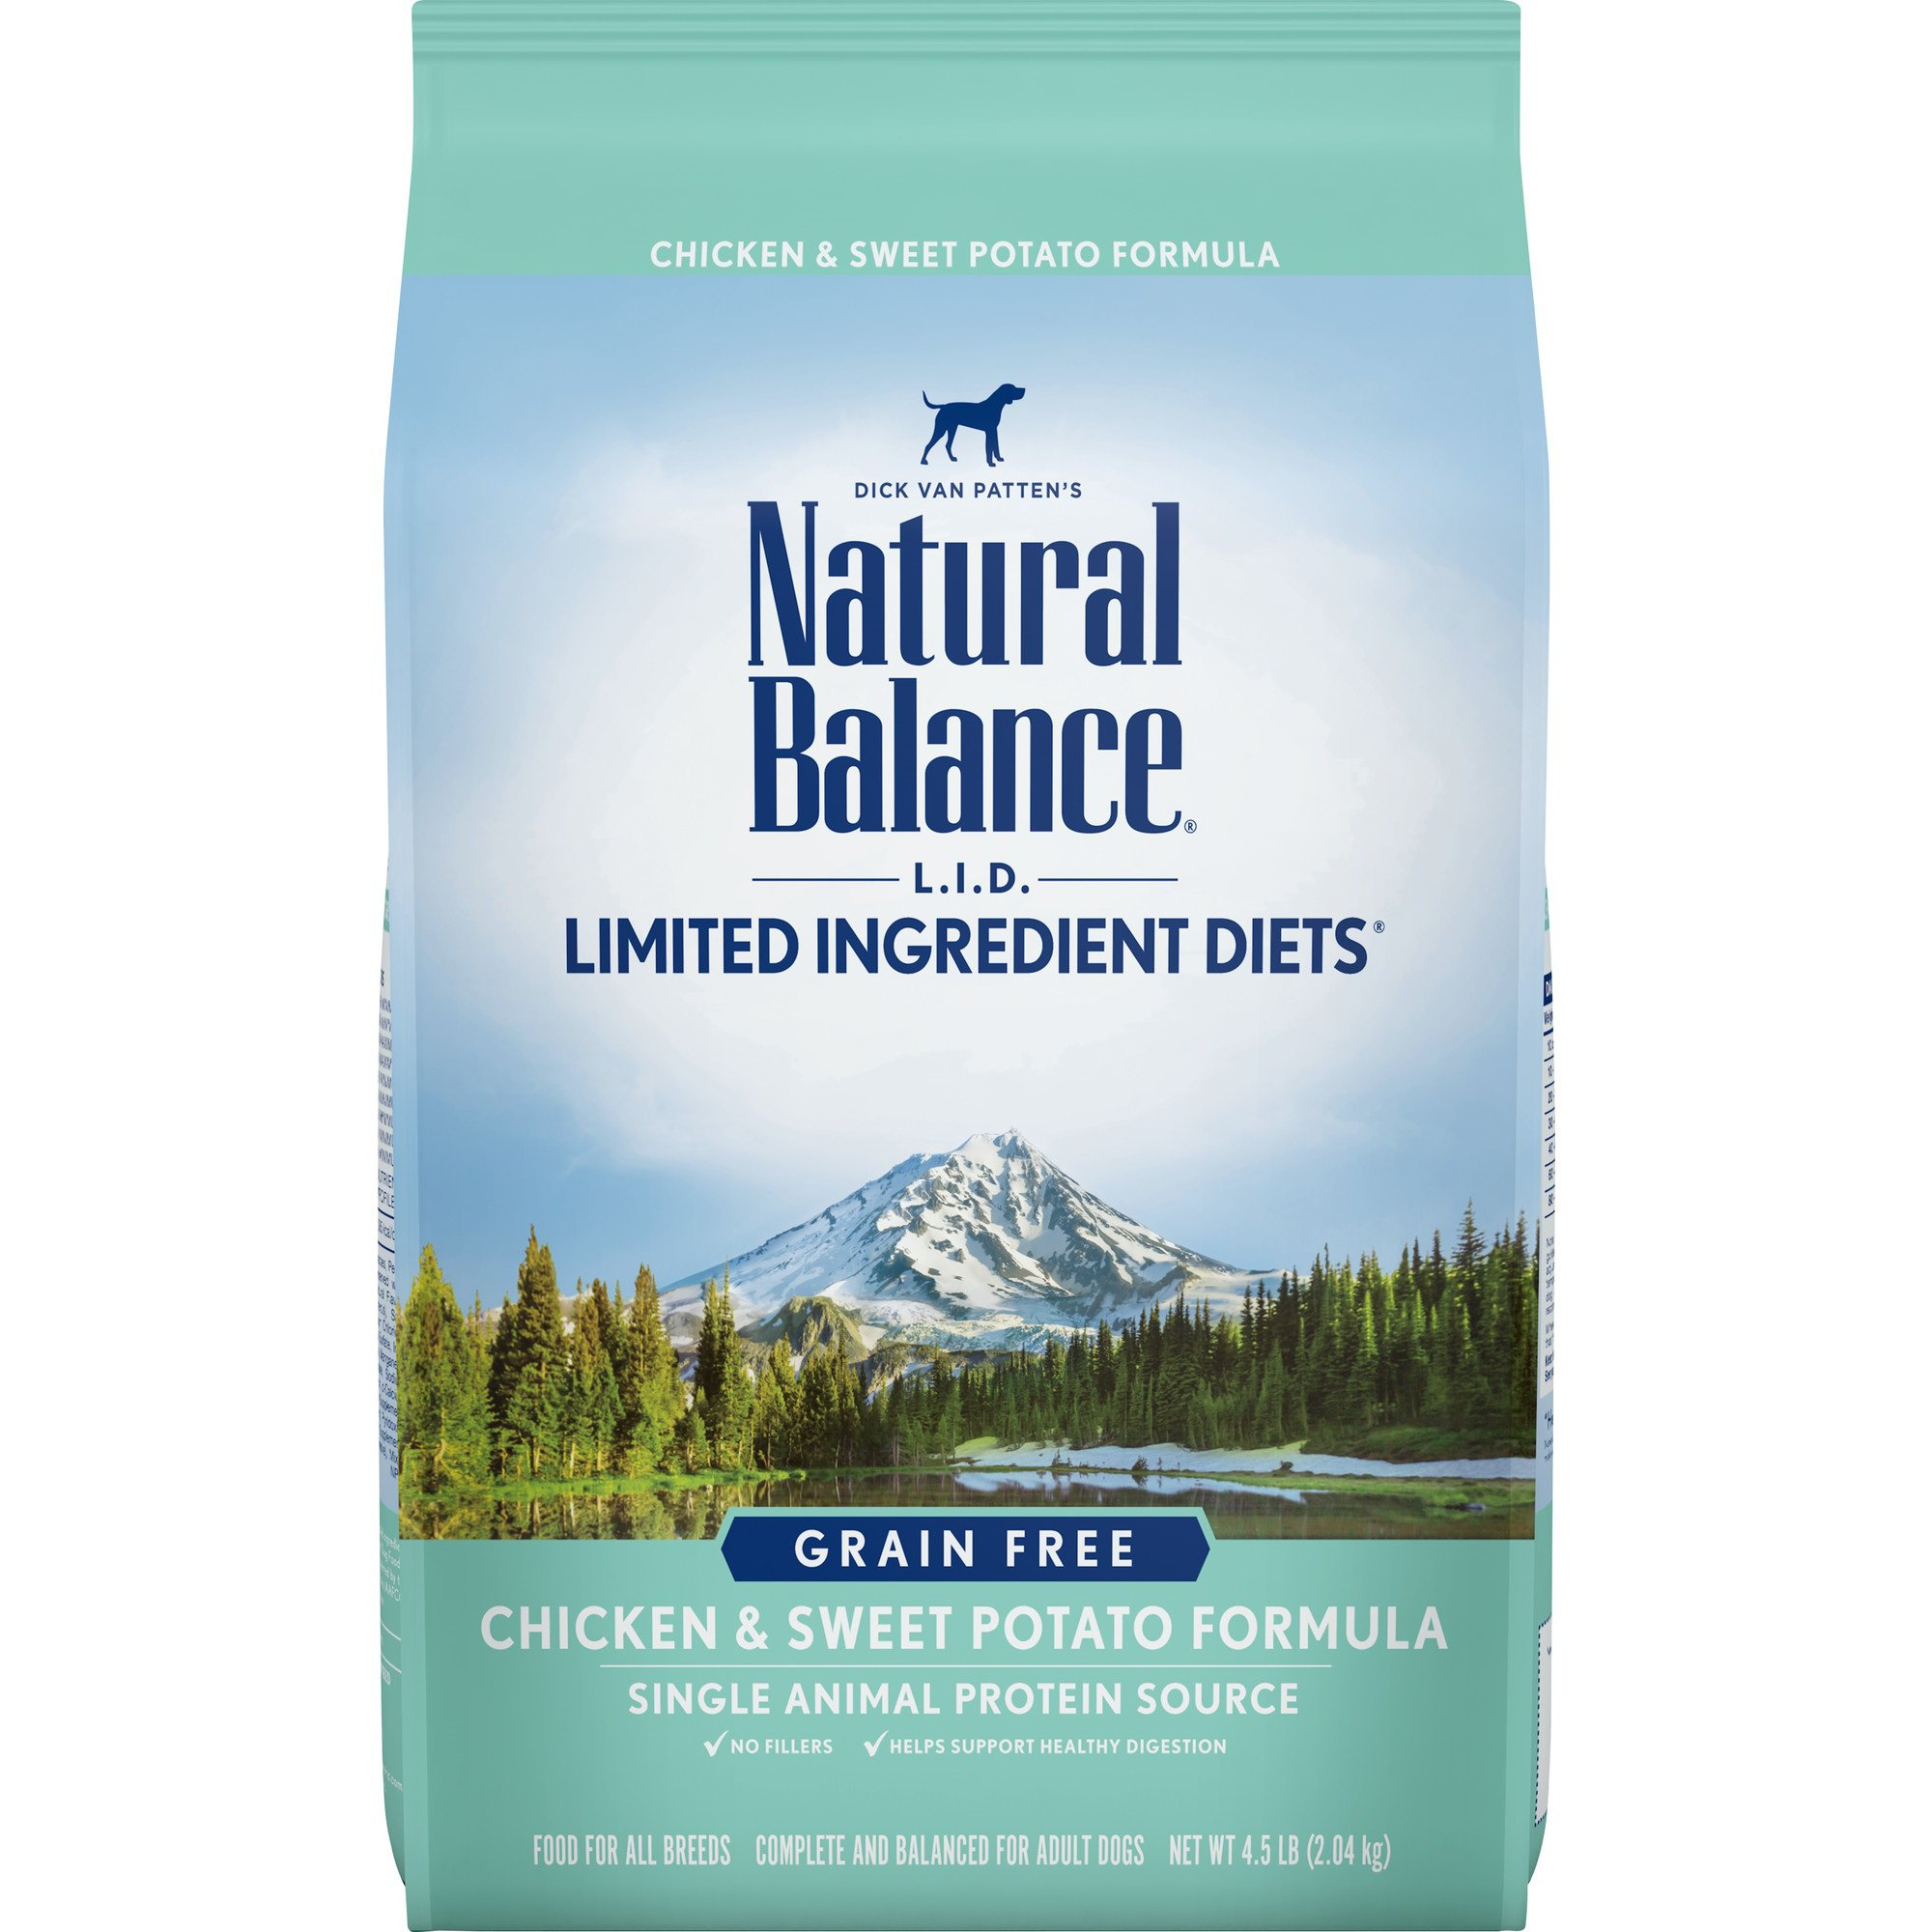 Natural Balance L.I.D. Limited Ingredient Diets Chicken & Sweet Potato Dog Food, 4.5 lbs.